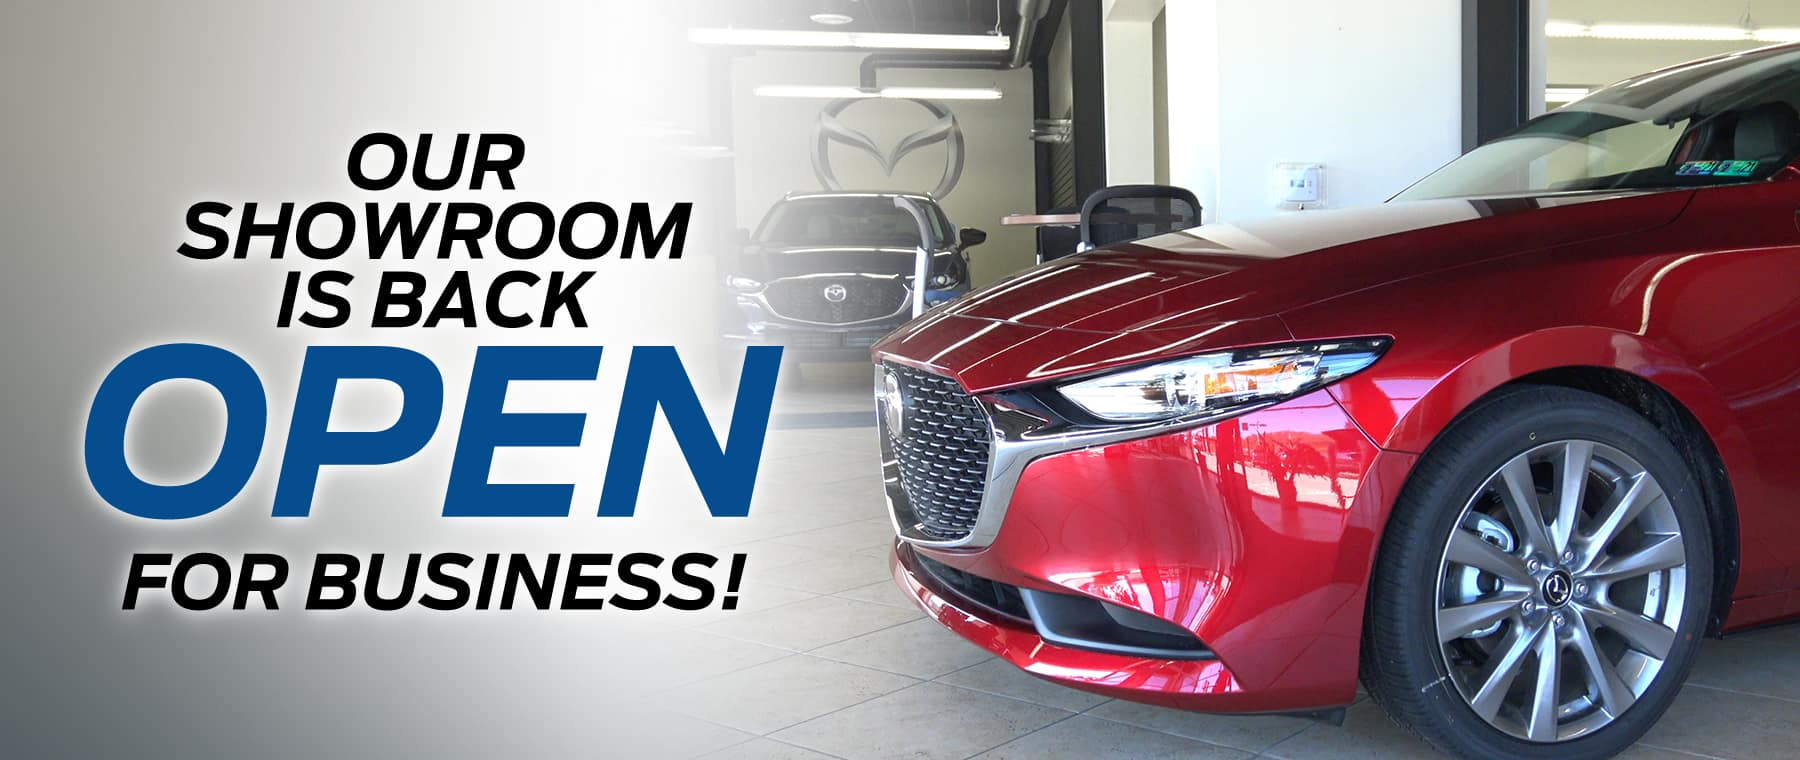 Mazda Dealer in Greensburg PA is Open and ready to serve you!